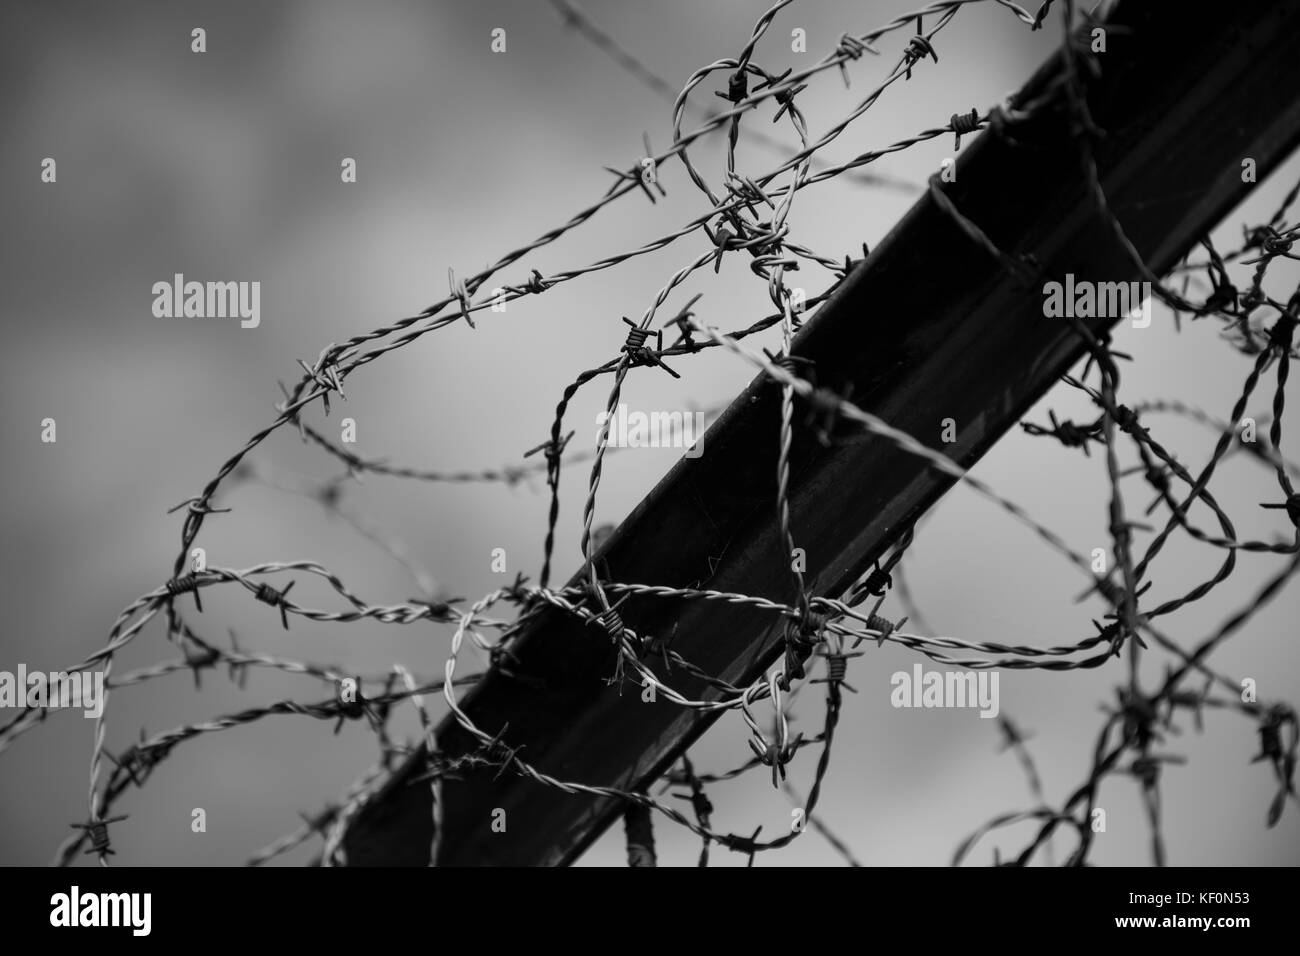 A black and white picture of a fence with barb wire - Stock Image